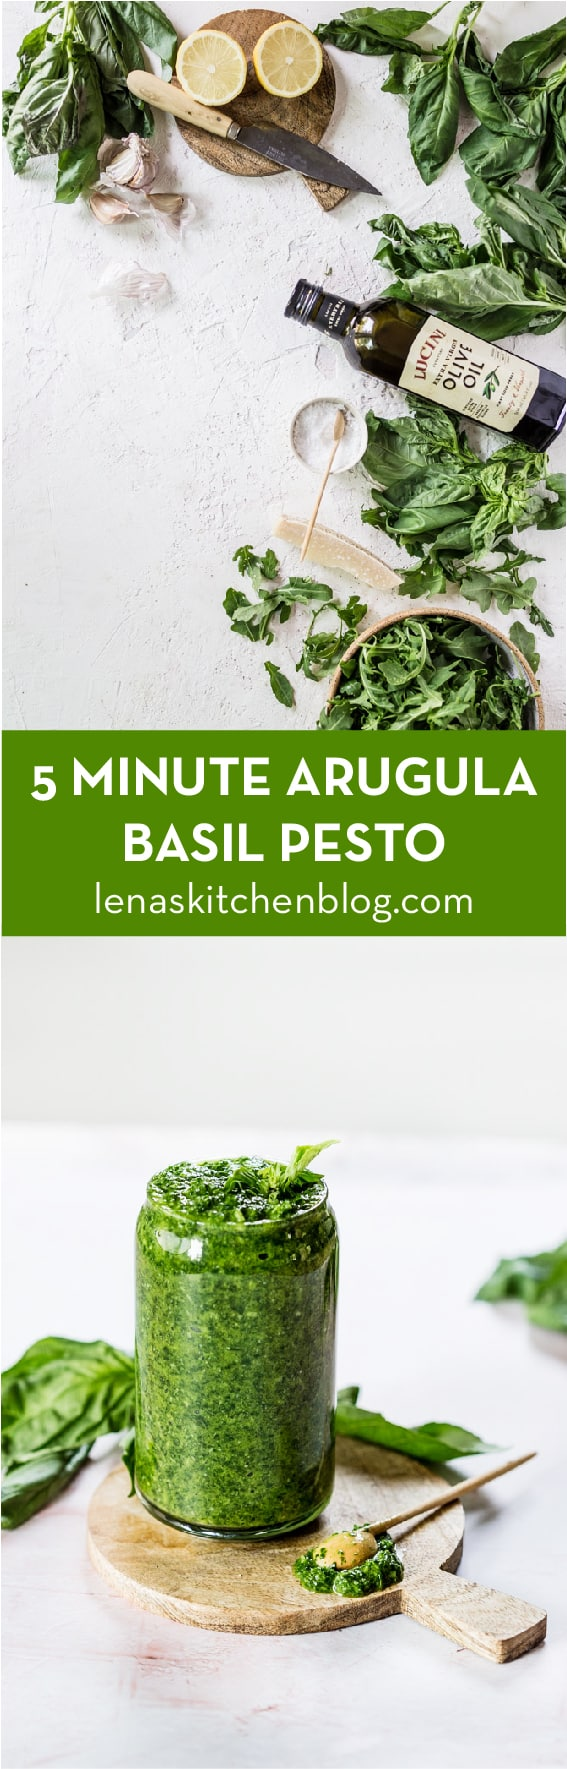 5 MINUTE ARUGULA BASIL PESTO made with cheese, garlic, olive oil and salt by lenaskitchenblog.com